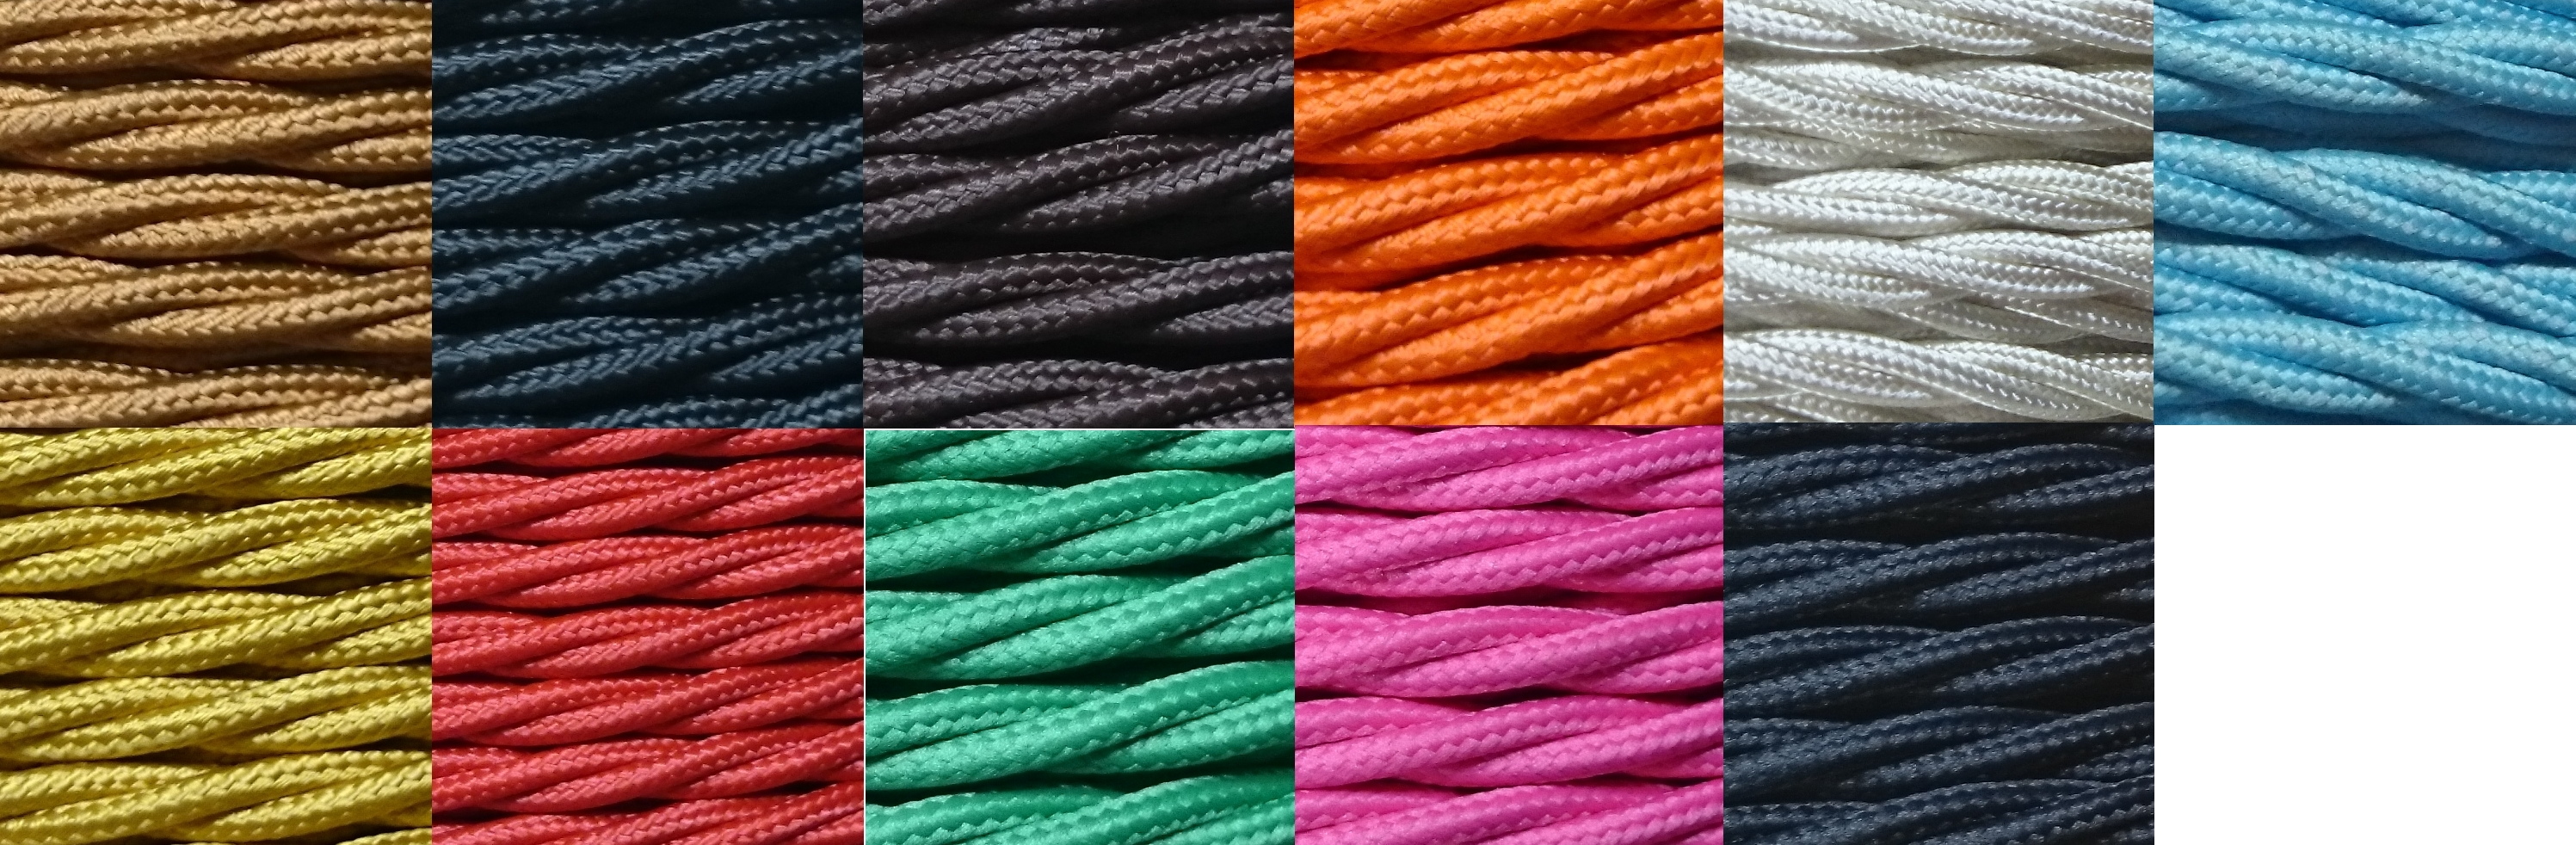 3 Core 0 75mm Twisted Braided Fabric Electrical Lighting